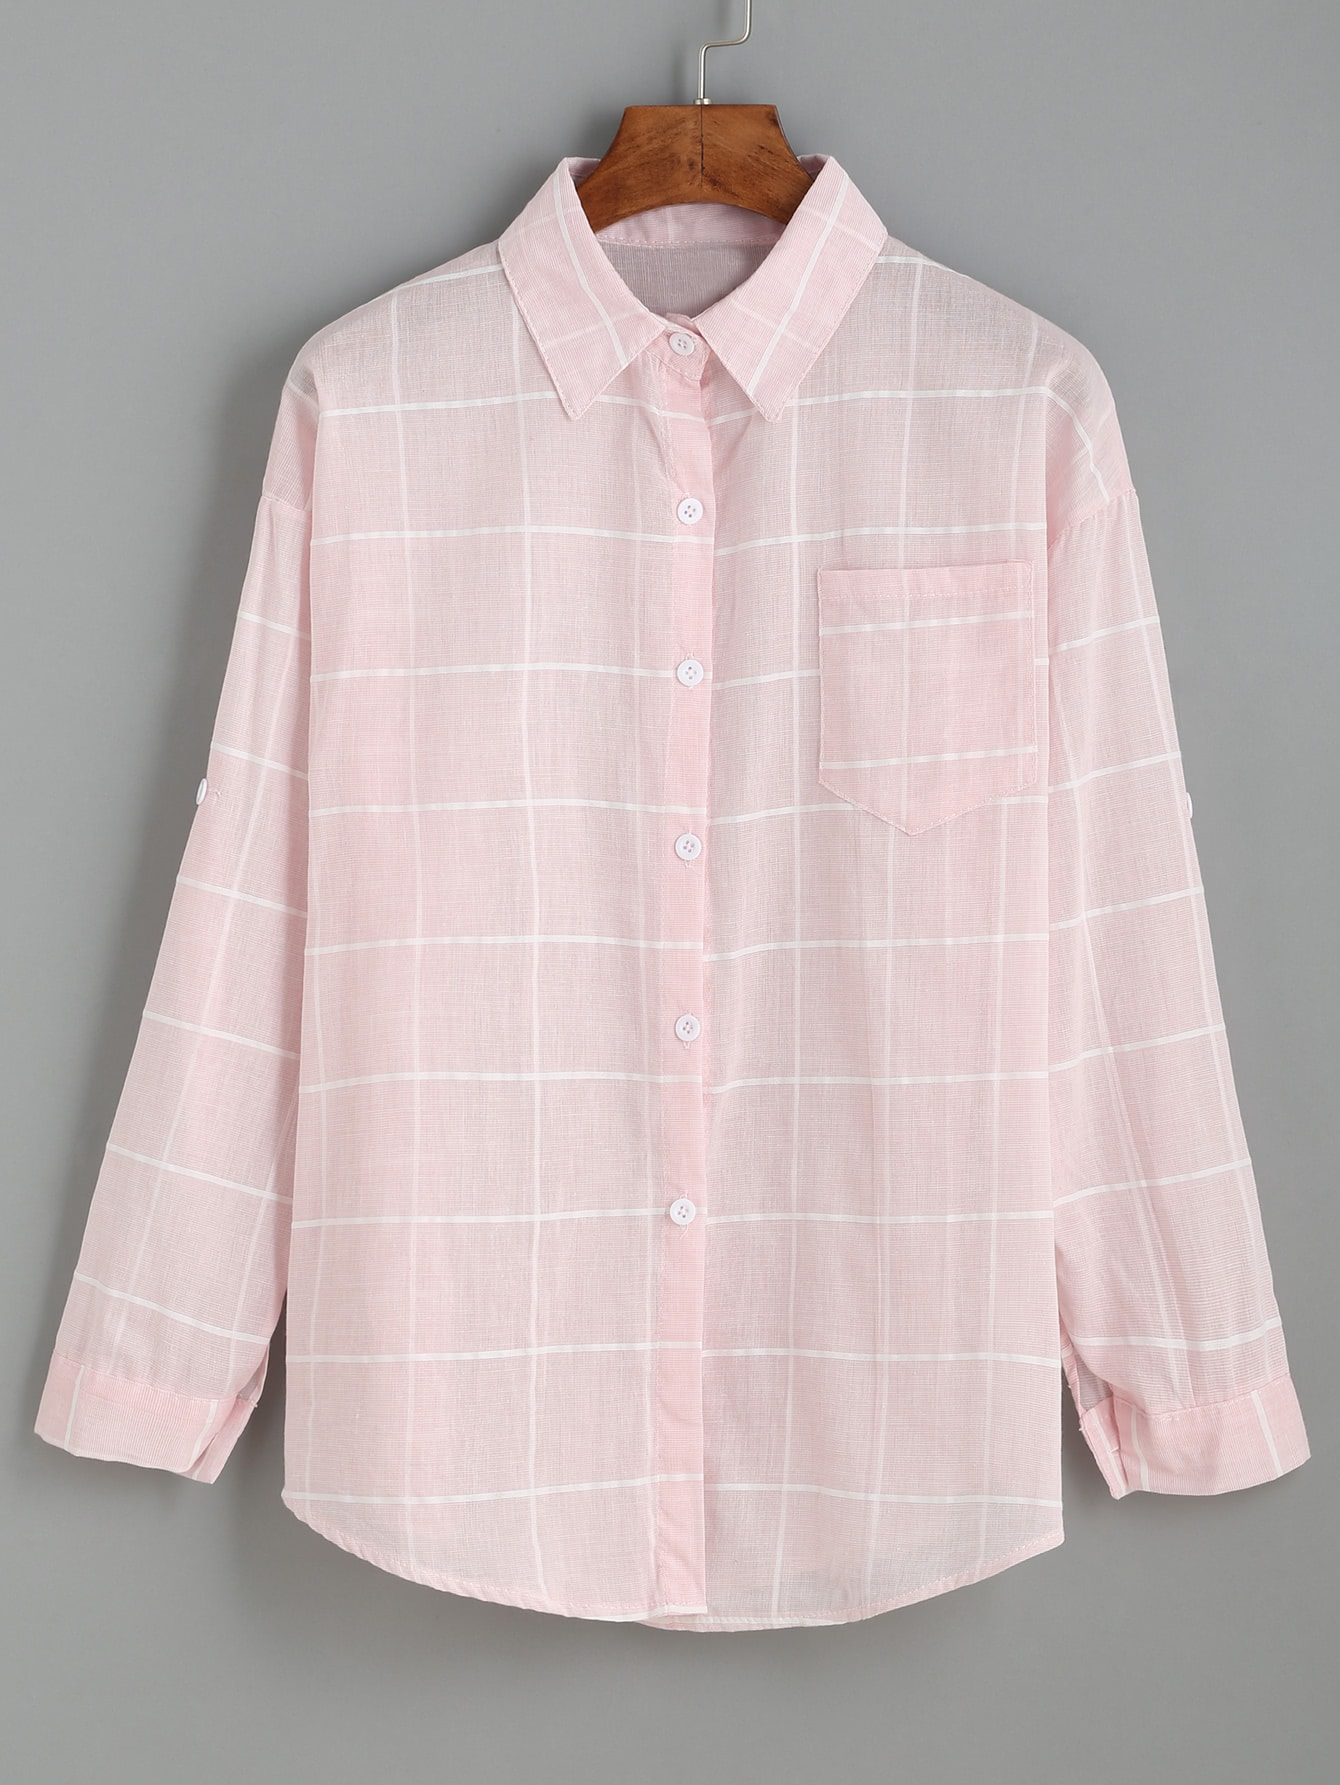 Pink Grid Drop Shoulder BlousePink Grid Drop Shoulder Blouse<br><br>color: Pink<br>size: one-size